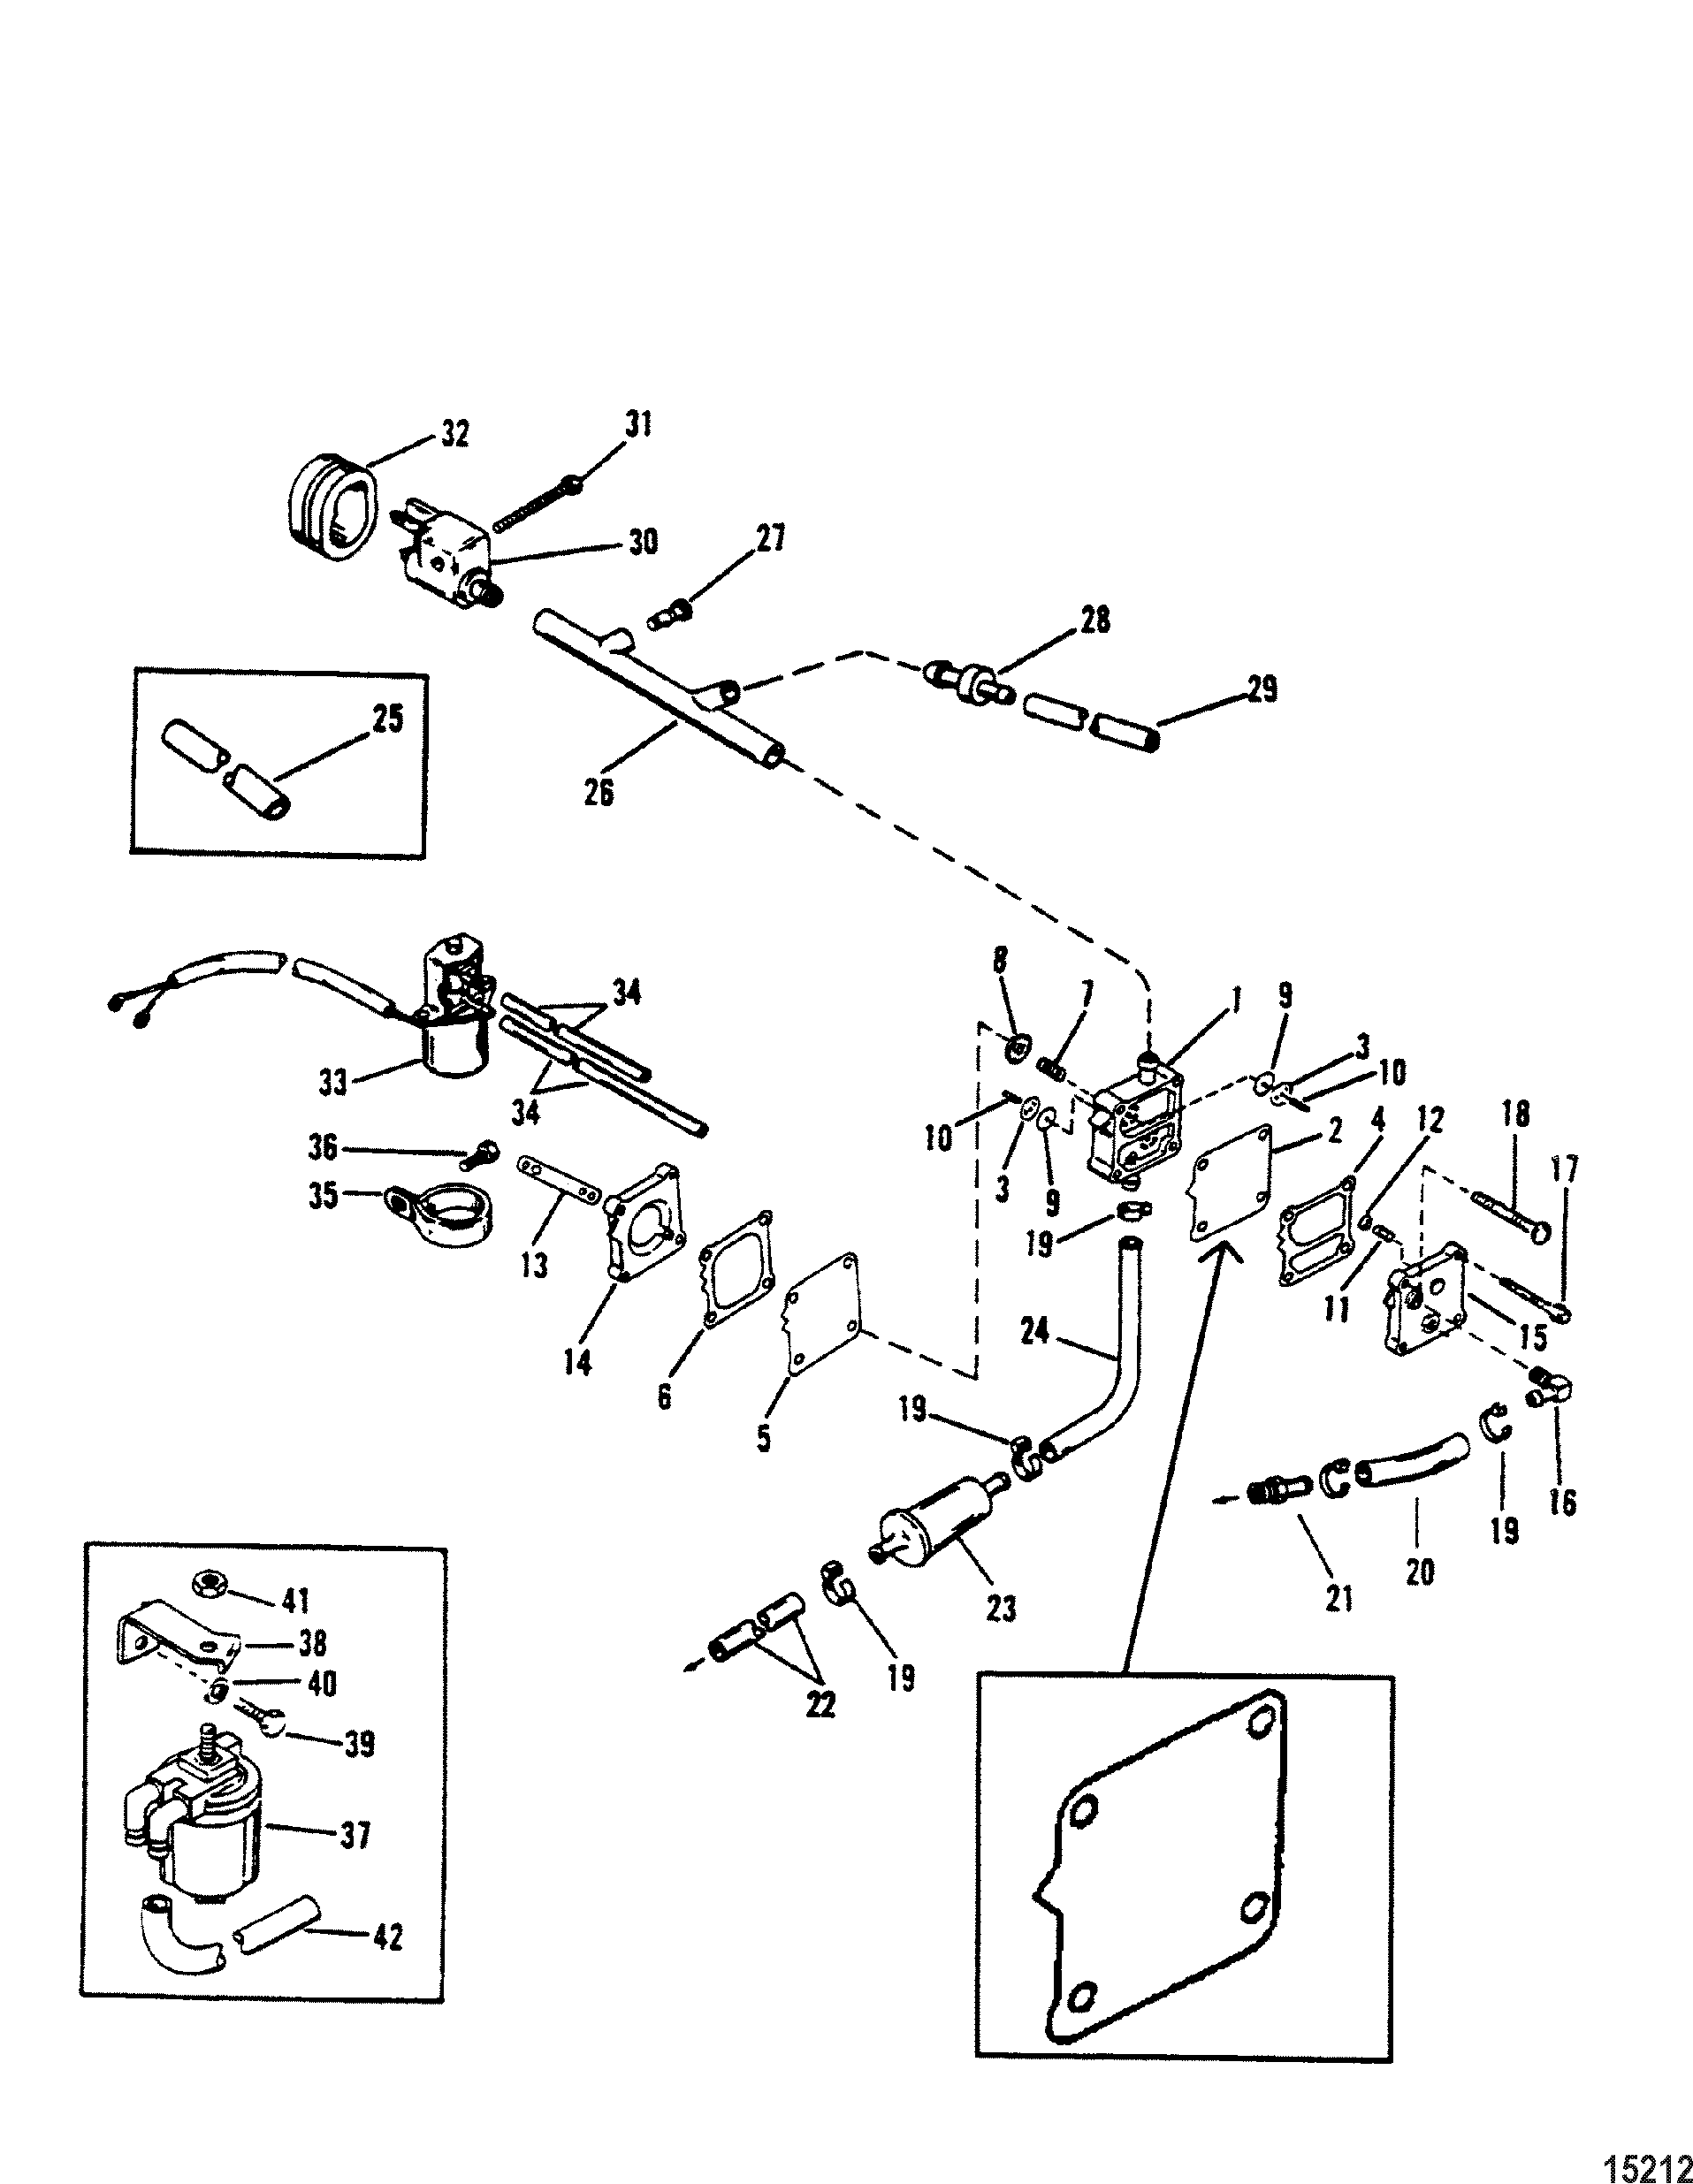 Fuel Pump Use With Inline Check Valve For Mariner Mercury 75 90 Hp Tohatsu Outboard Wiring Diagram Pumpuse 3 Cylinder